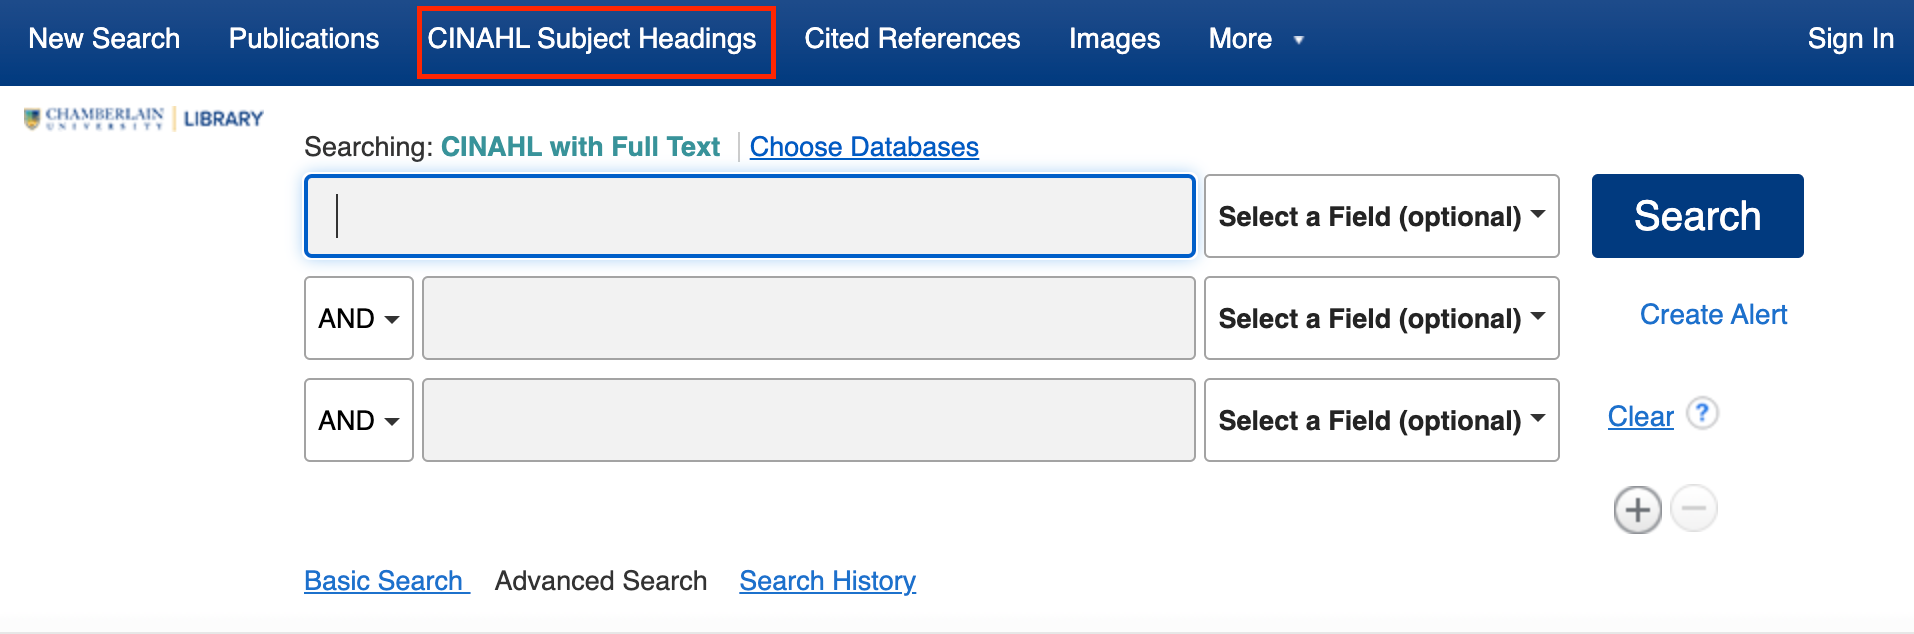 CINAHL Subject Headings in top navigation menu of the CINAHL with Full Text database